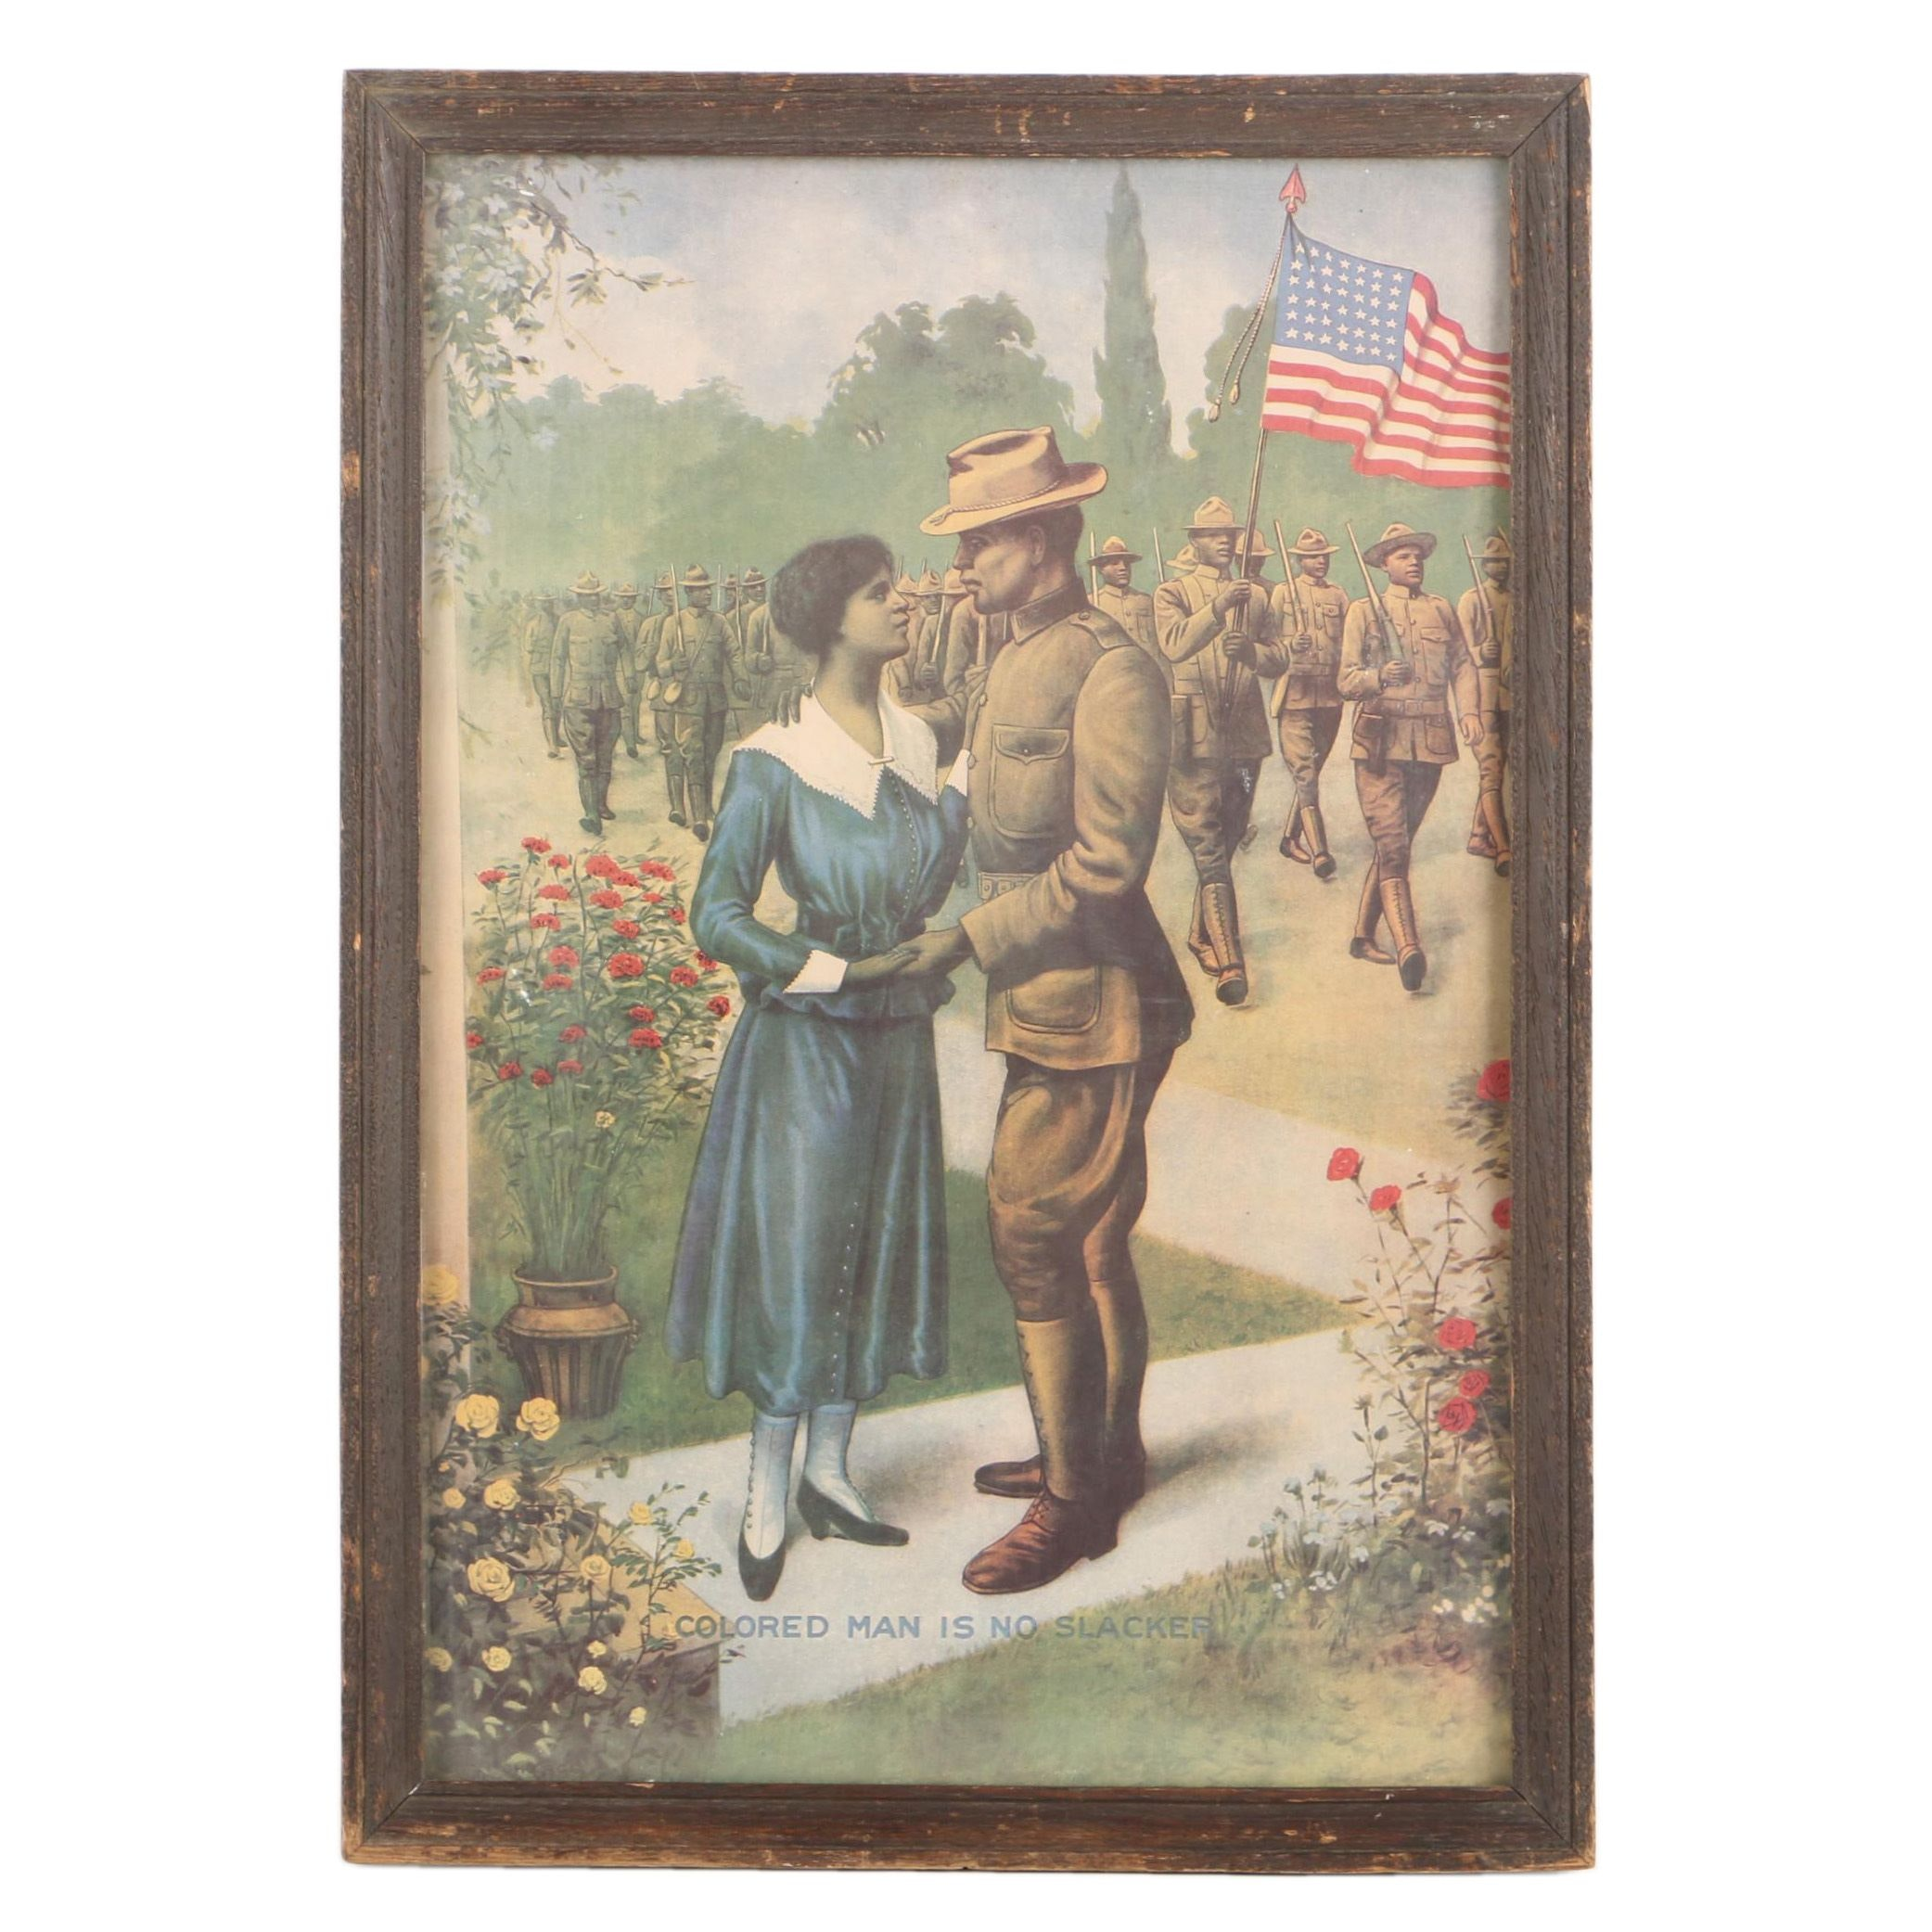 Offset Lithograph After E. G. Renesch of WWI African American Soldiers